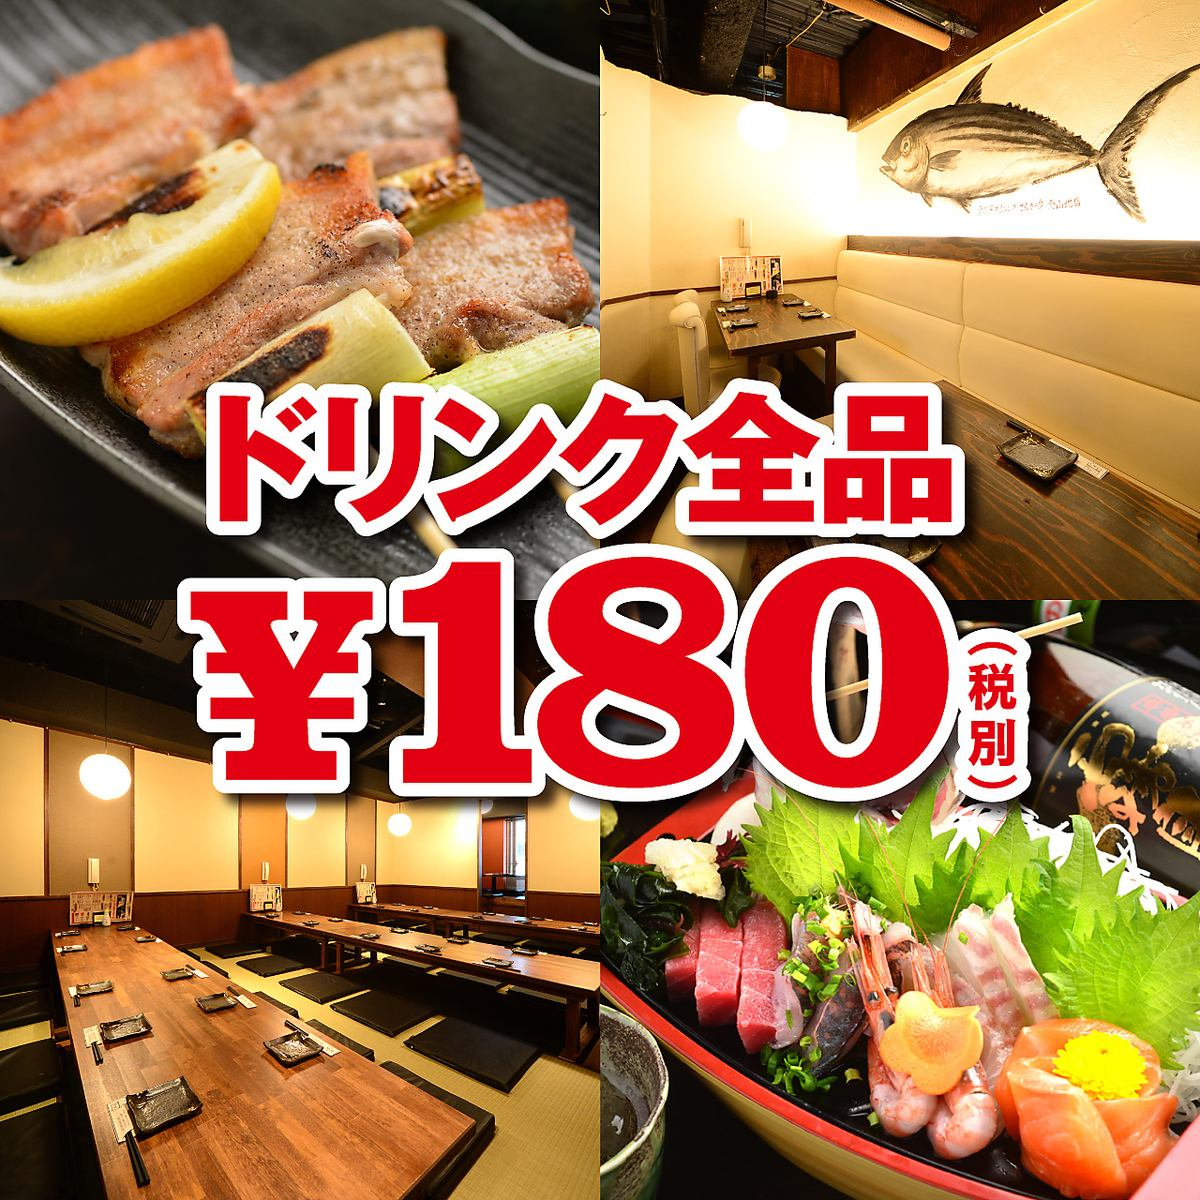 【Kanayama】 ★ All drinks 180 yen ★ Drink unlimited course with 2,500 yen ~!